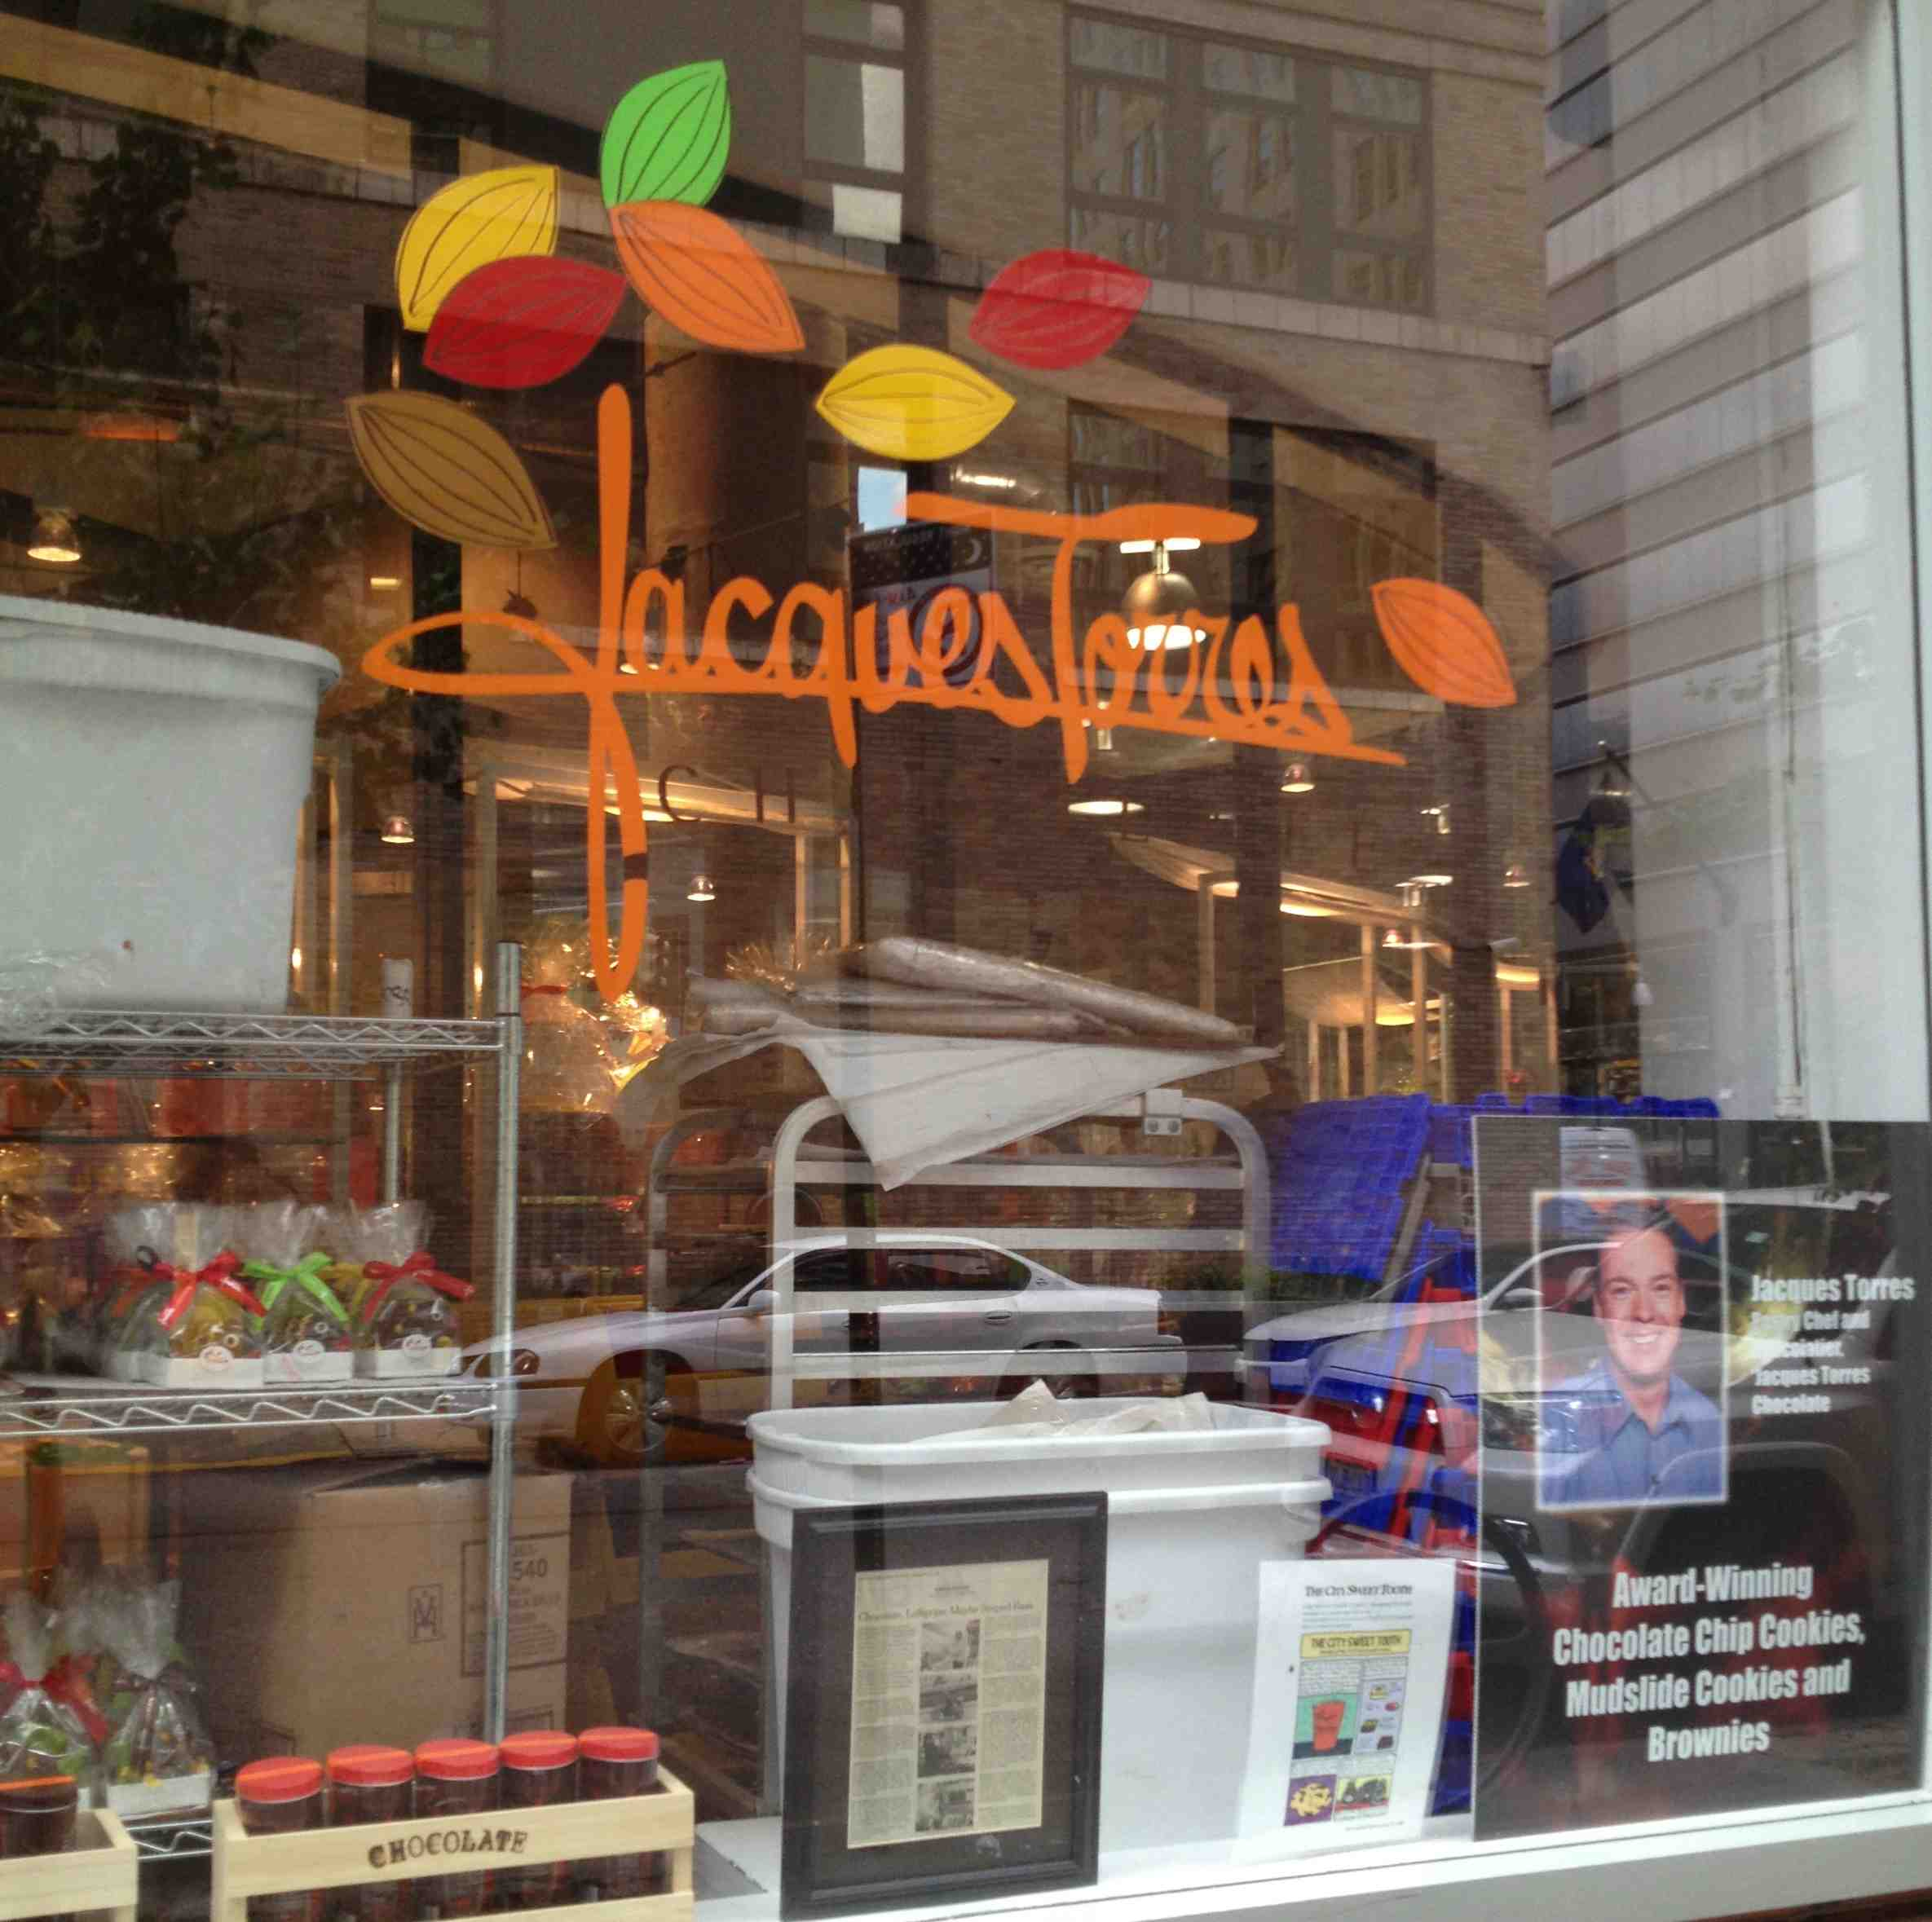 Jacques Torres Celebration featuring Driscoll's Strawberries